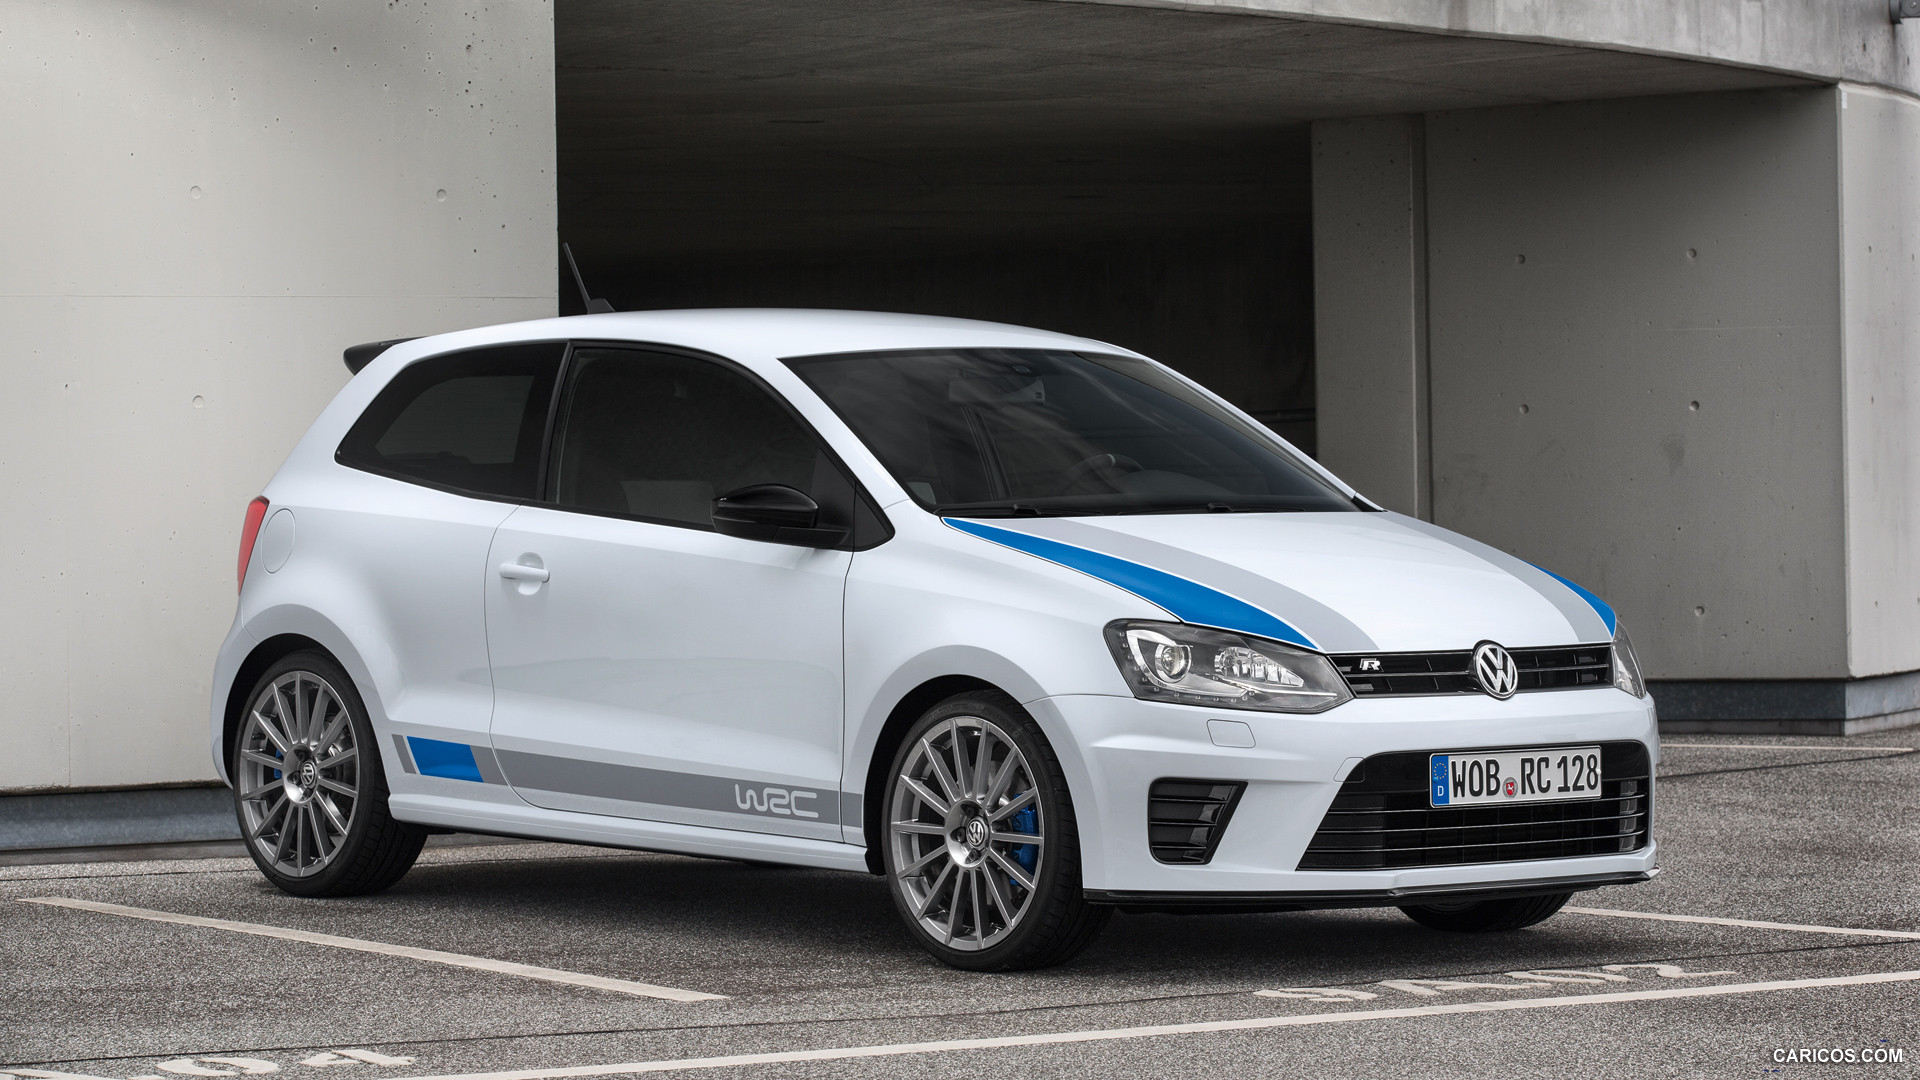 volkswagen polo r wrc street photos photo gallery page. Black Bedroom Furniture Sets. Home Design Ideas